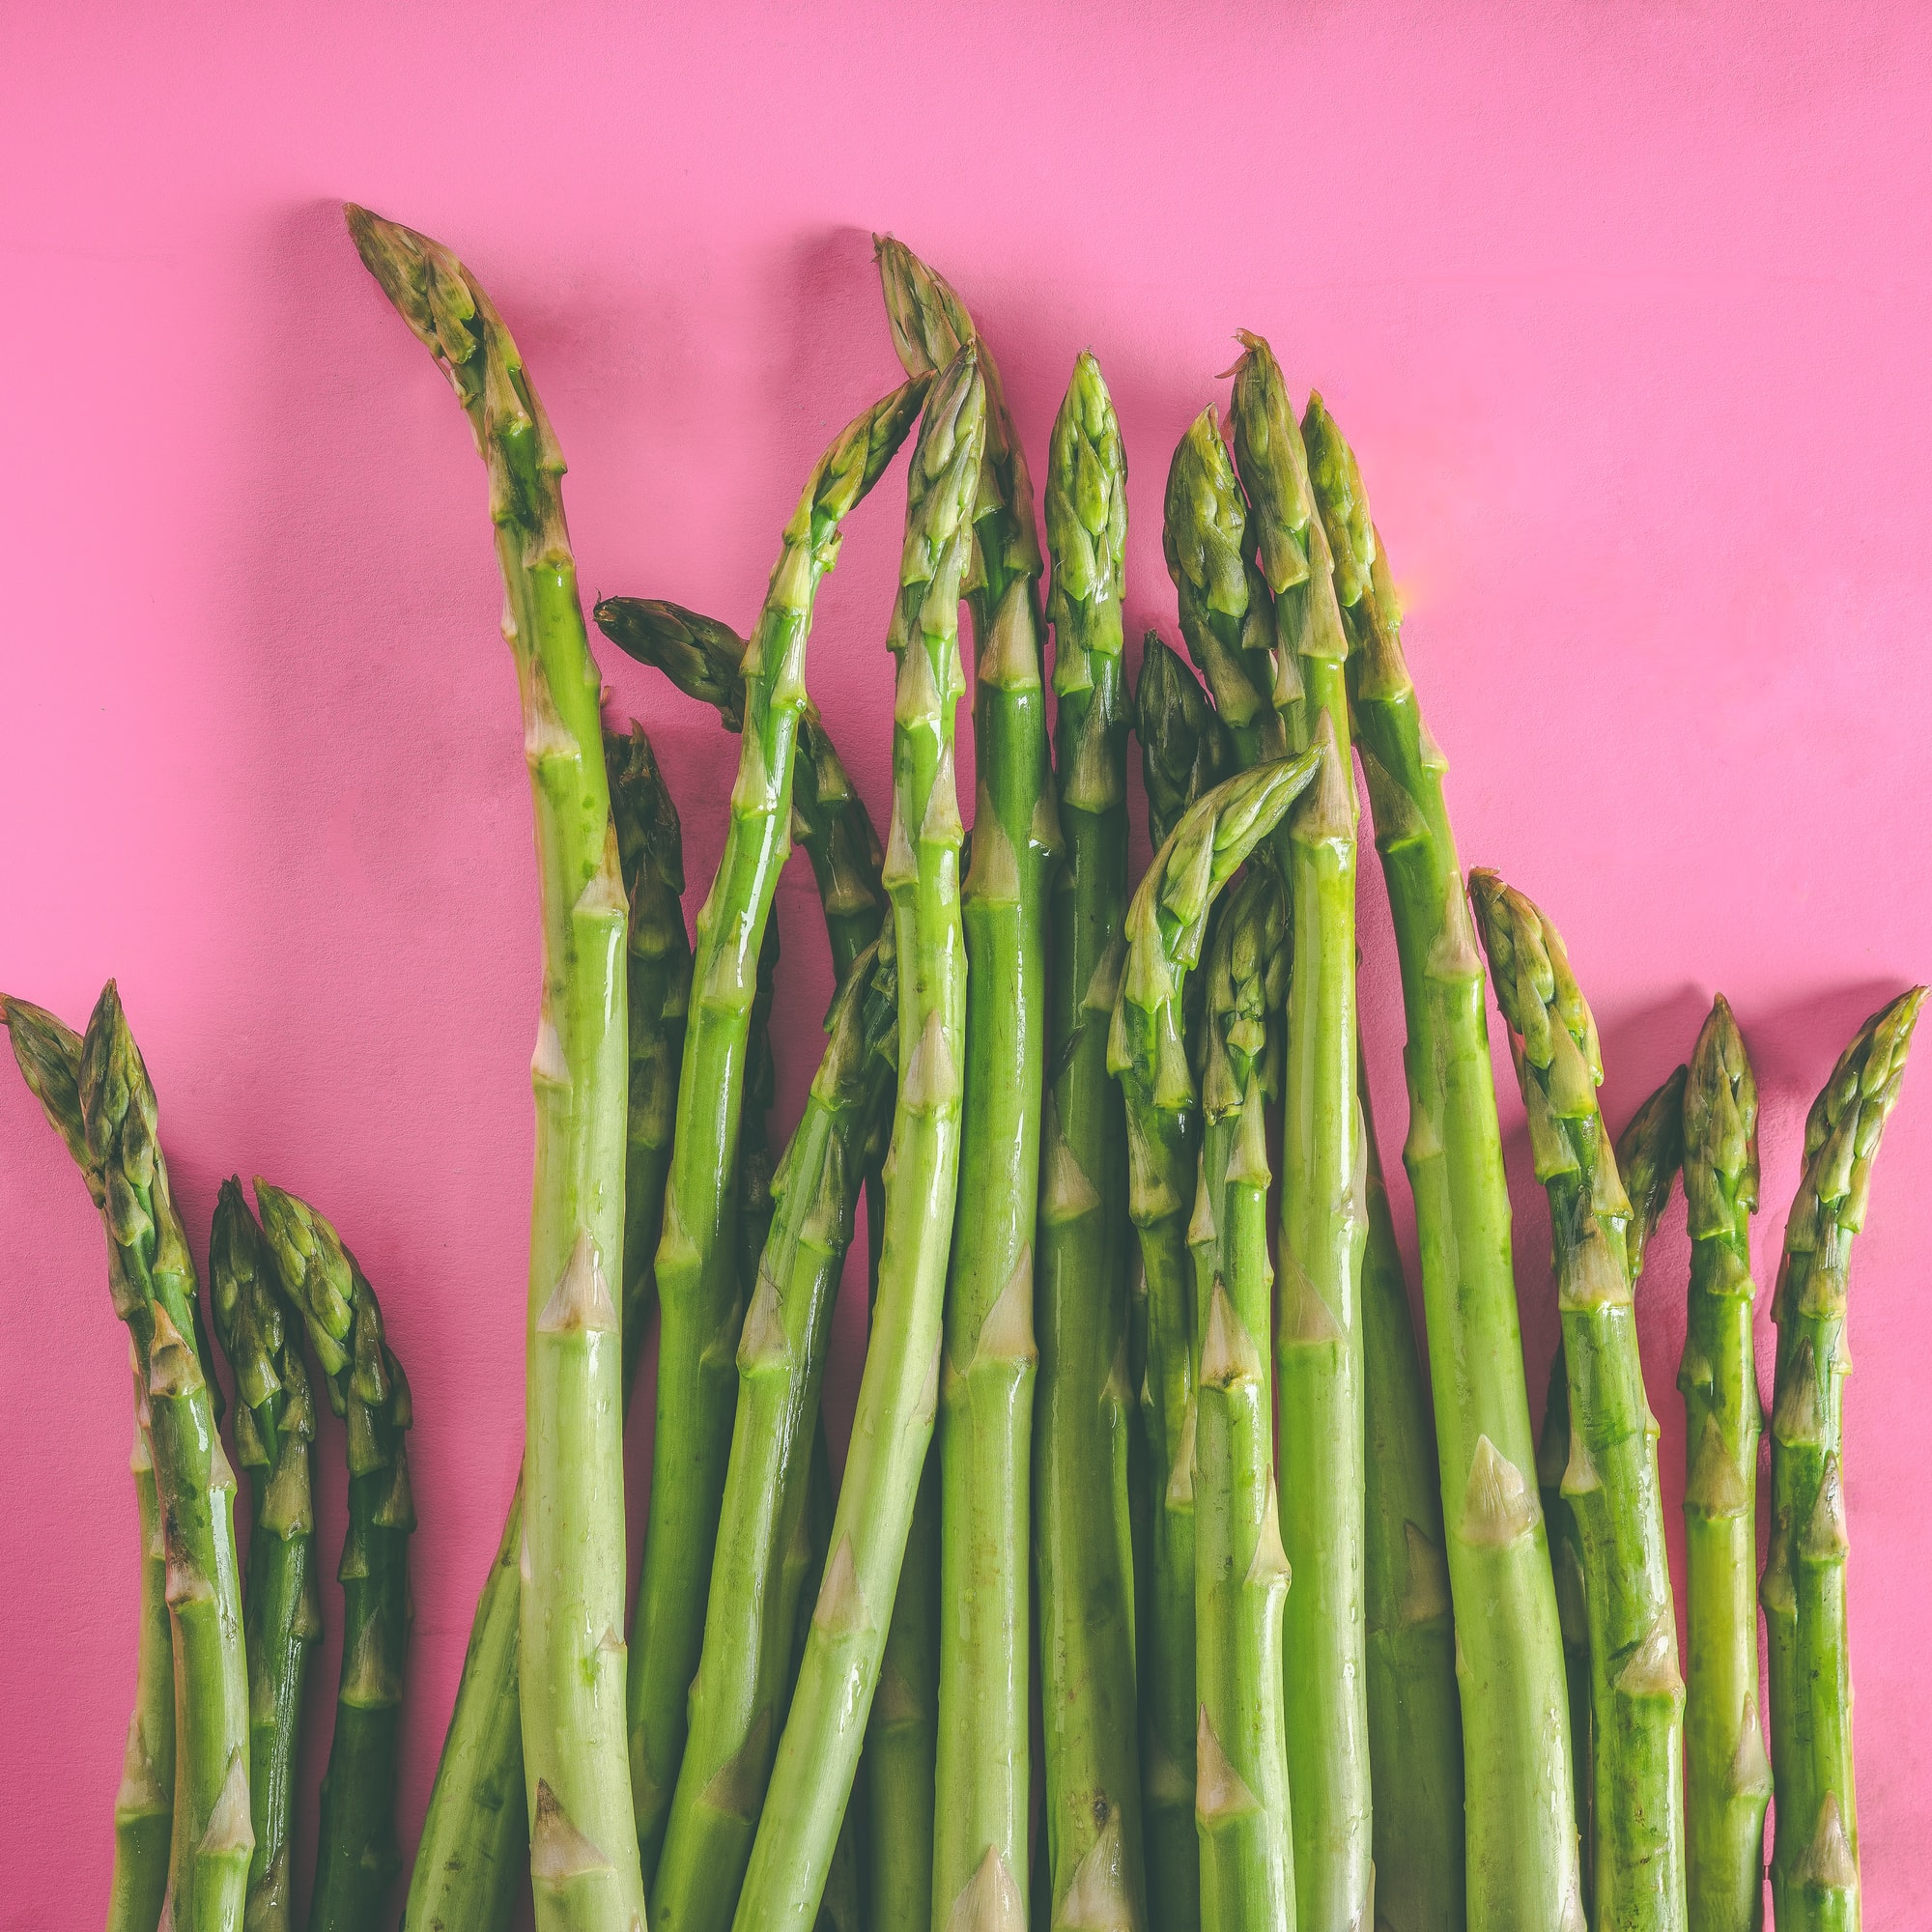 From Labradoodles to wild asparagus